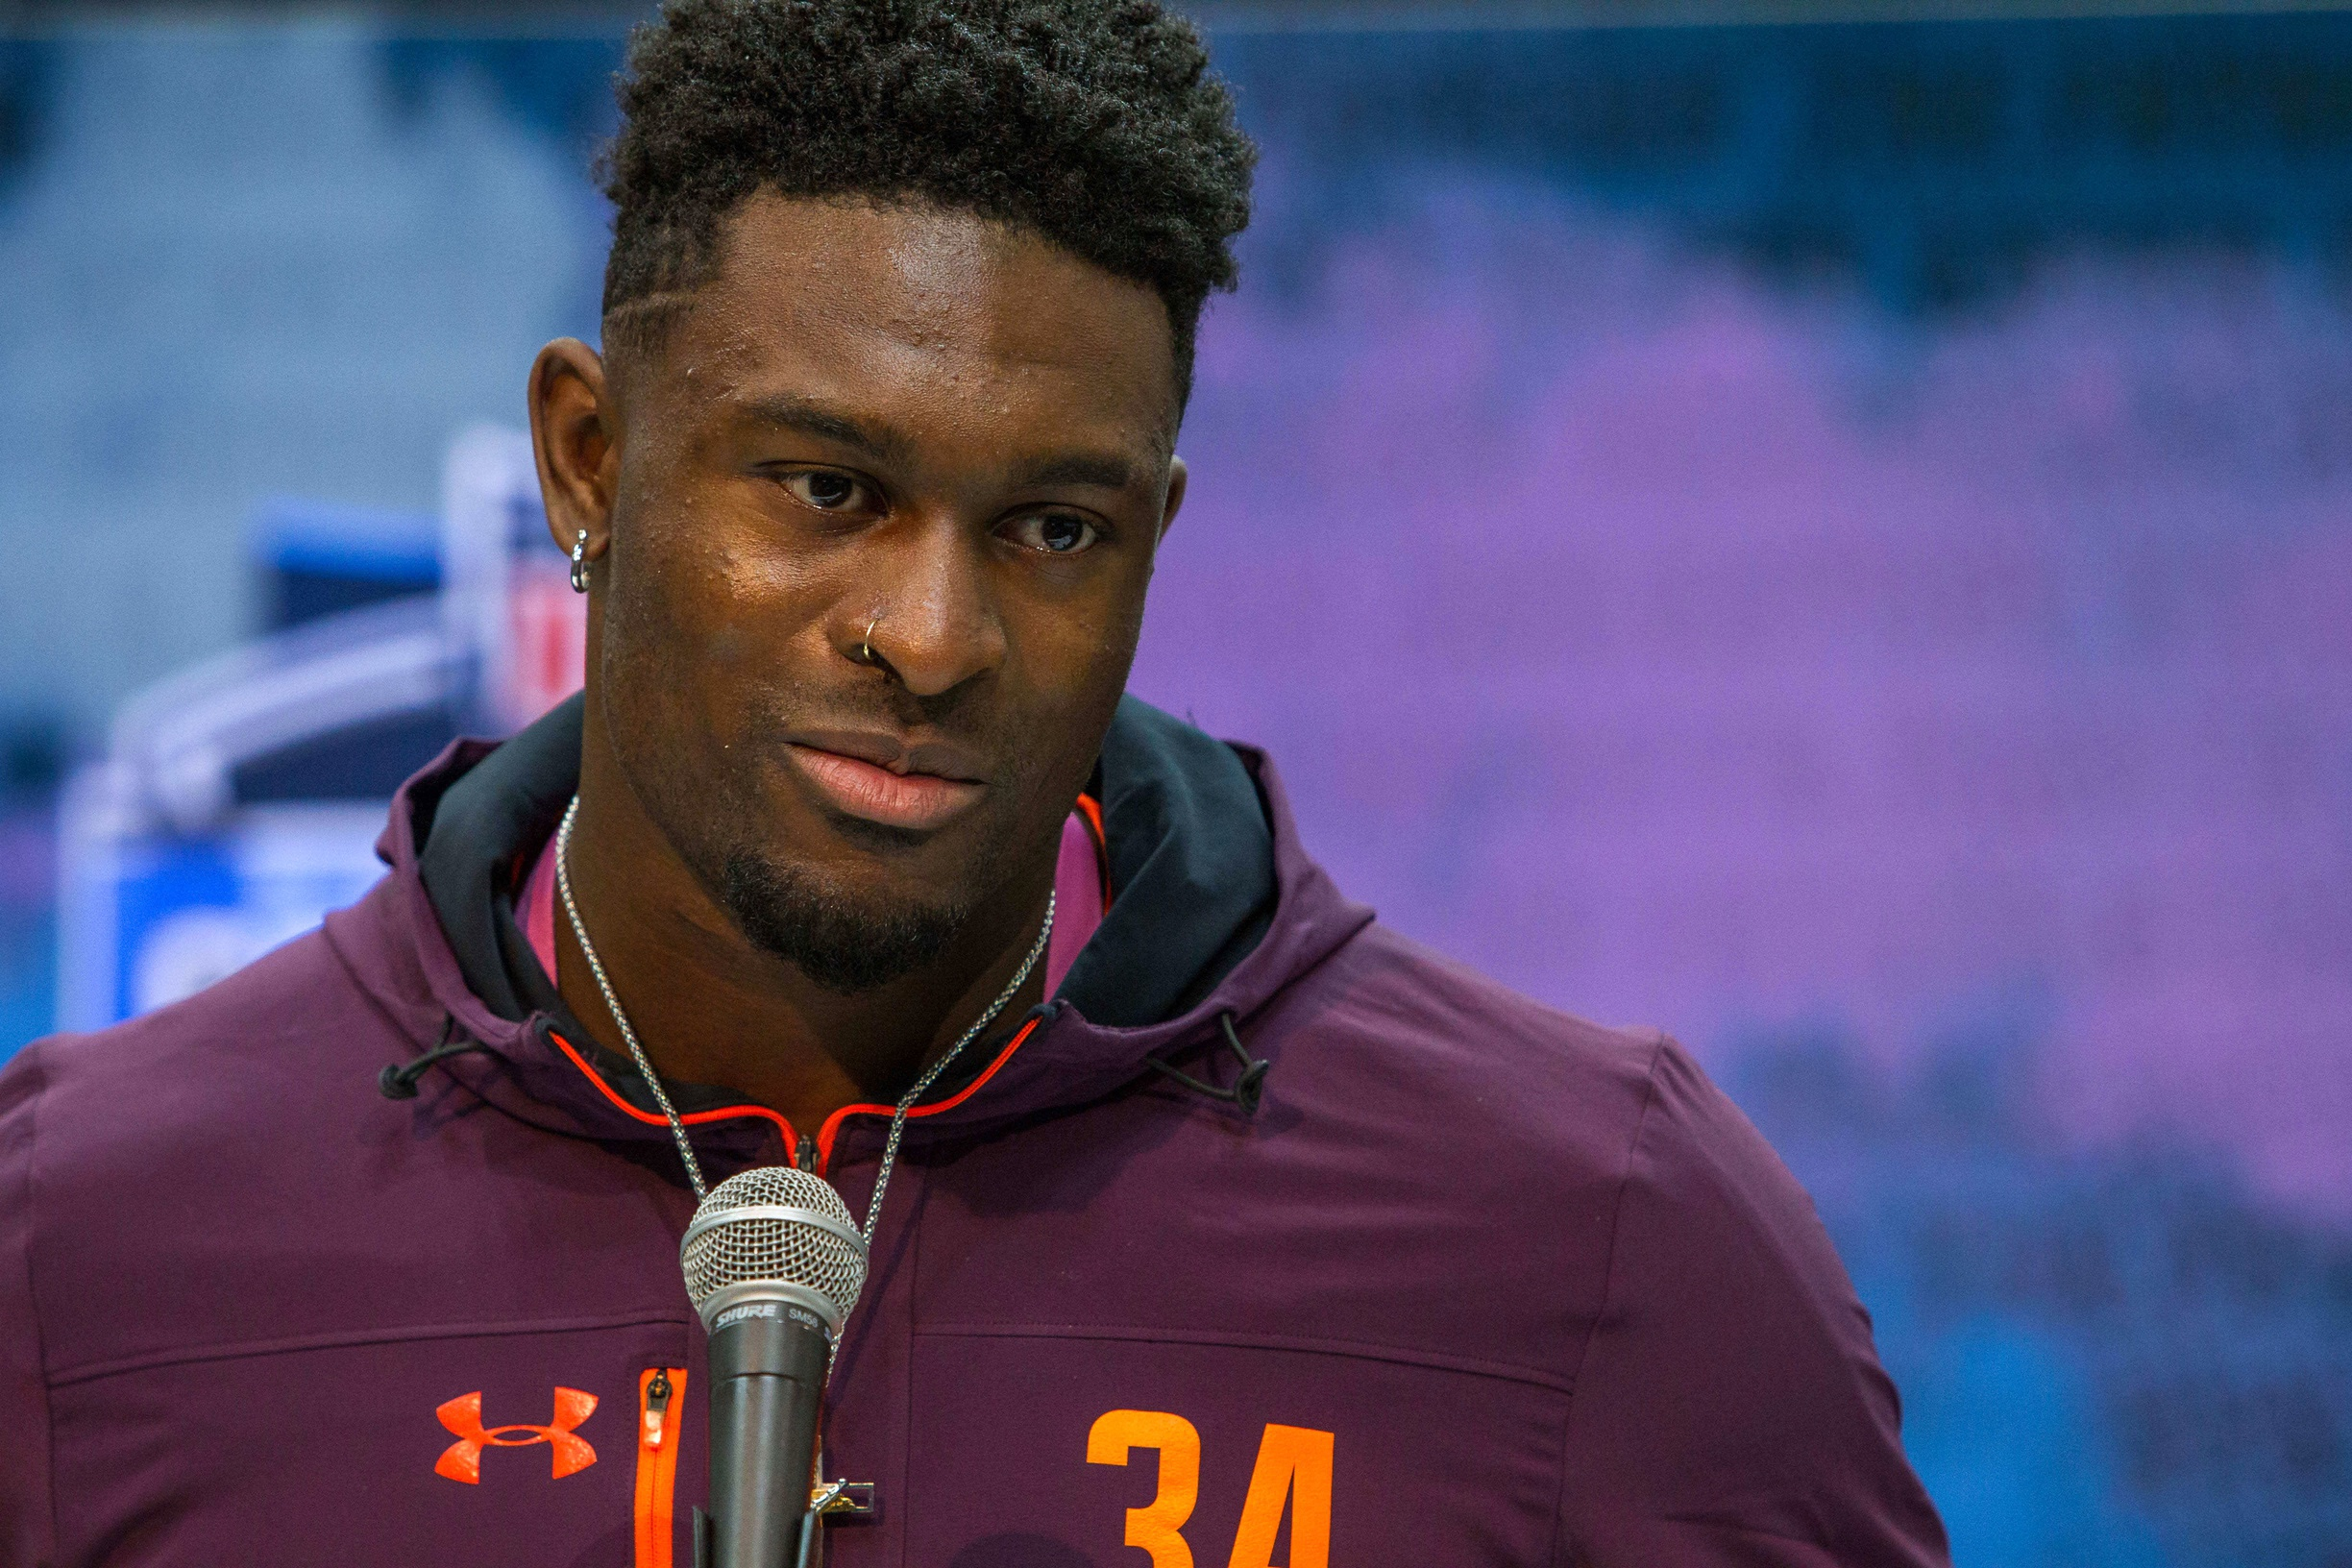 As D.K. Metcalf's draft stock soars following his epic Combine showing, keep these things in mind